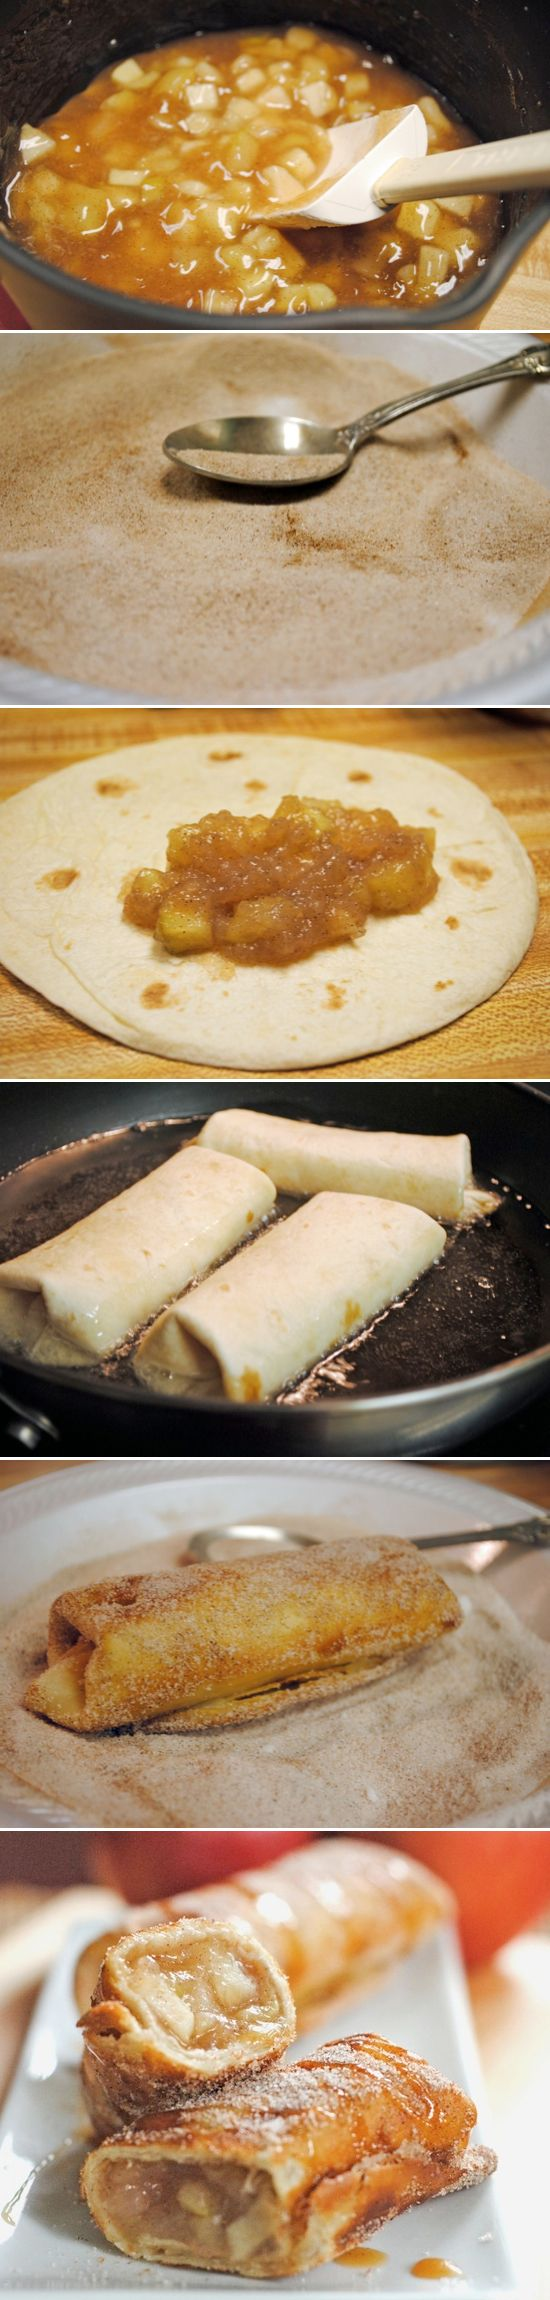 apple cinnamon chimichangas ... Ummmm Wow